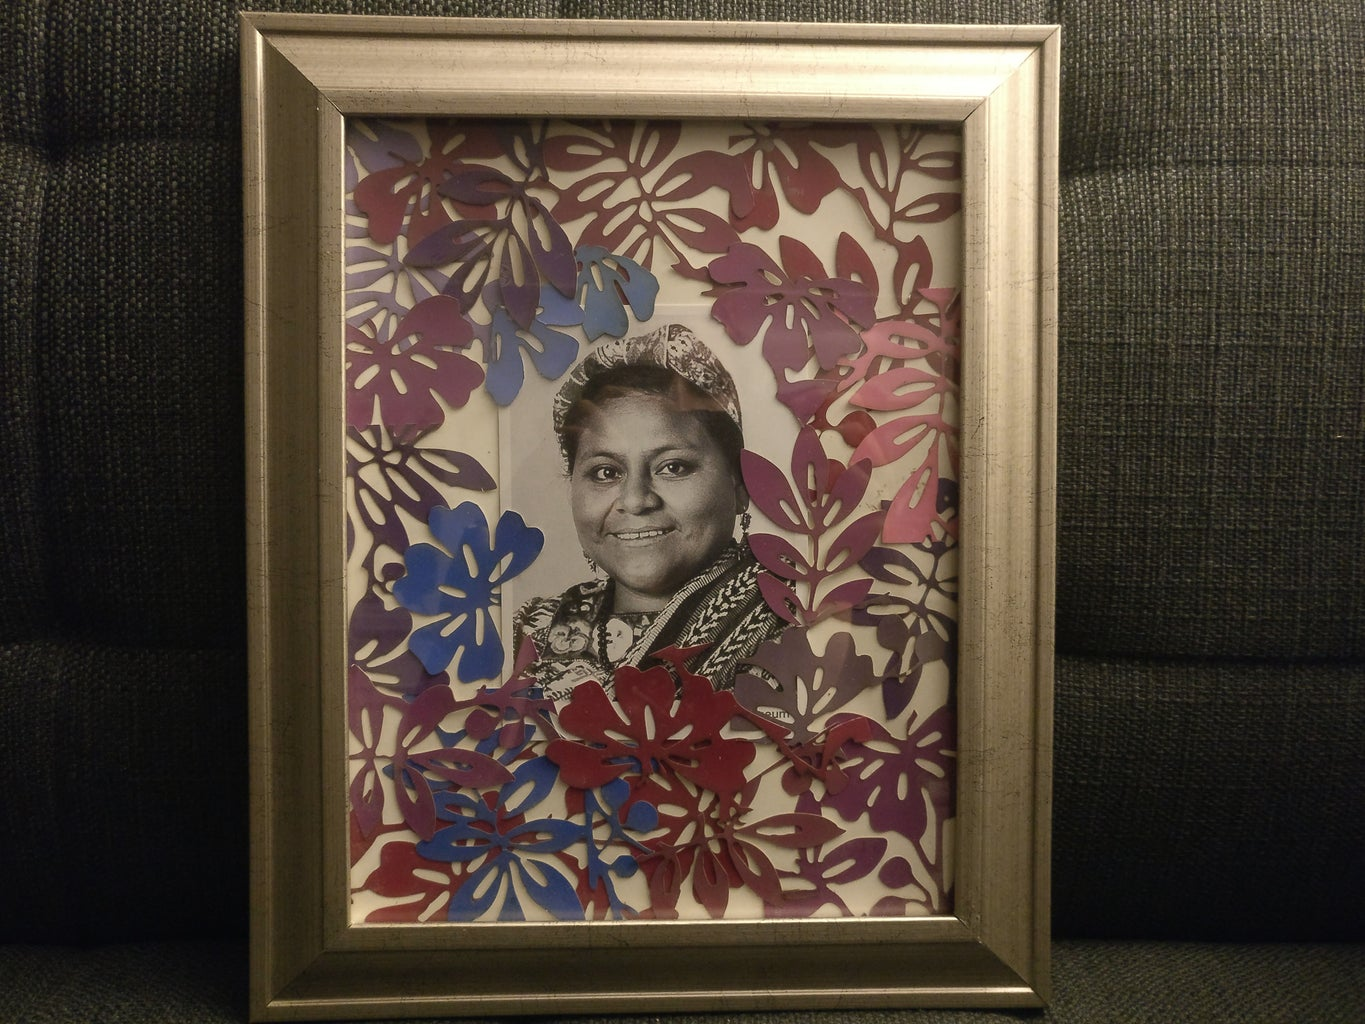 Hang Your Diy Up-cycled Frame